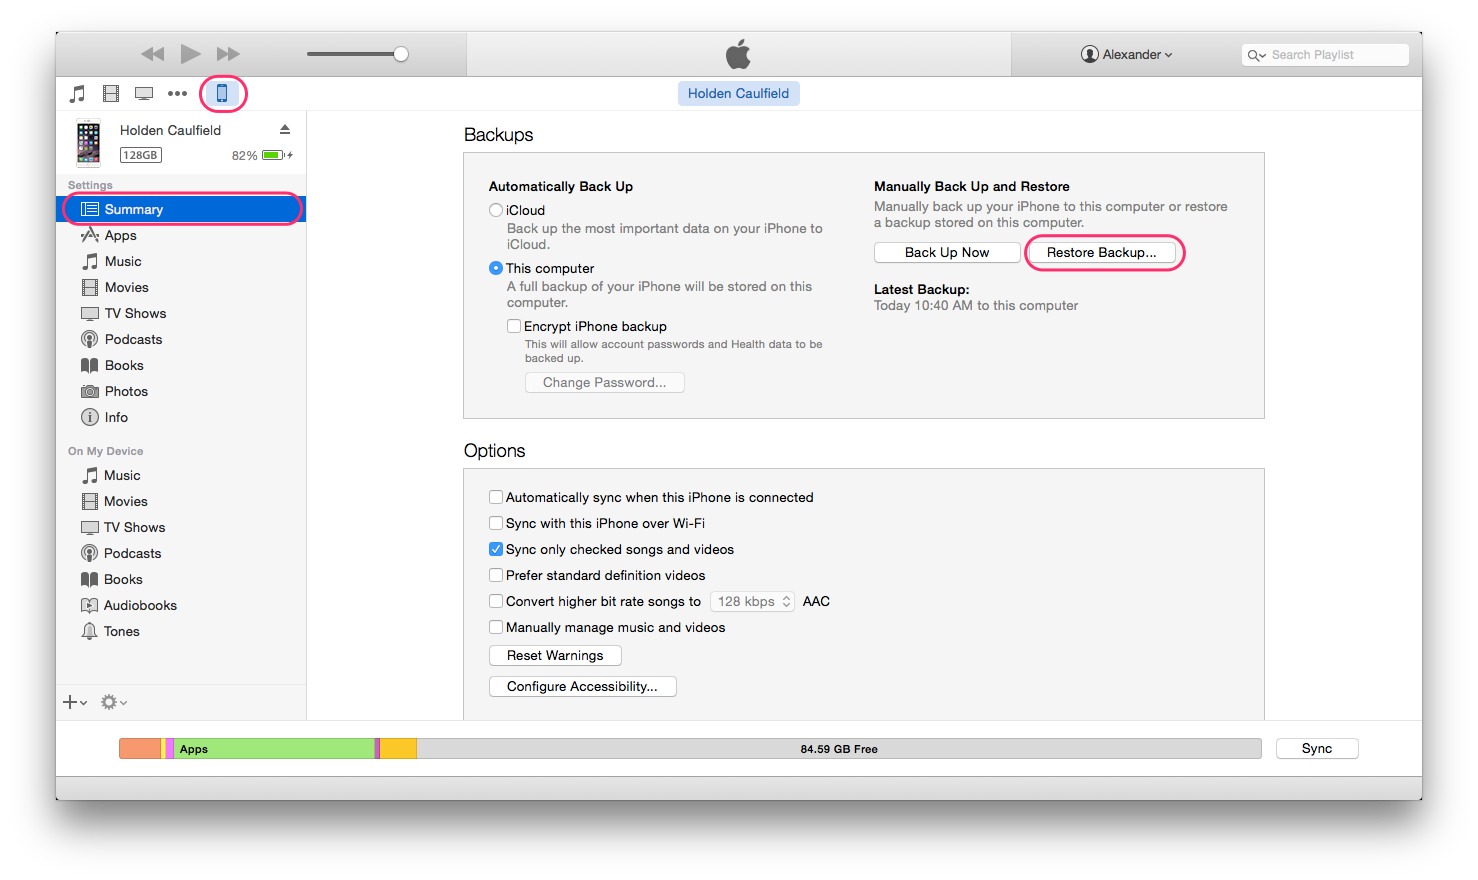 fc6fe0657765da590405fa63fc5f3a11 - How To Get Photos Back From Icloud That Were Deleted